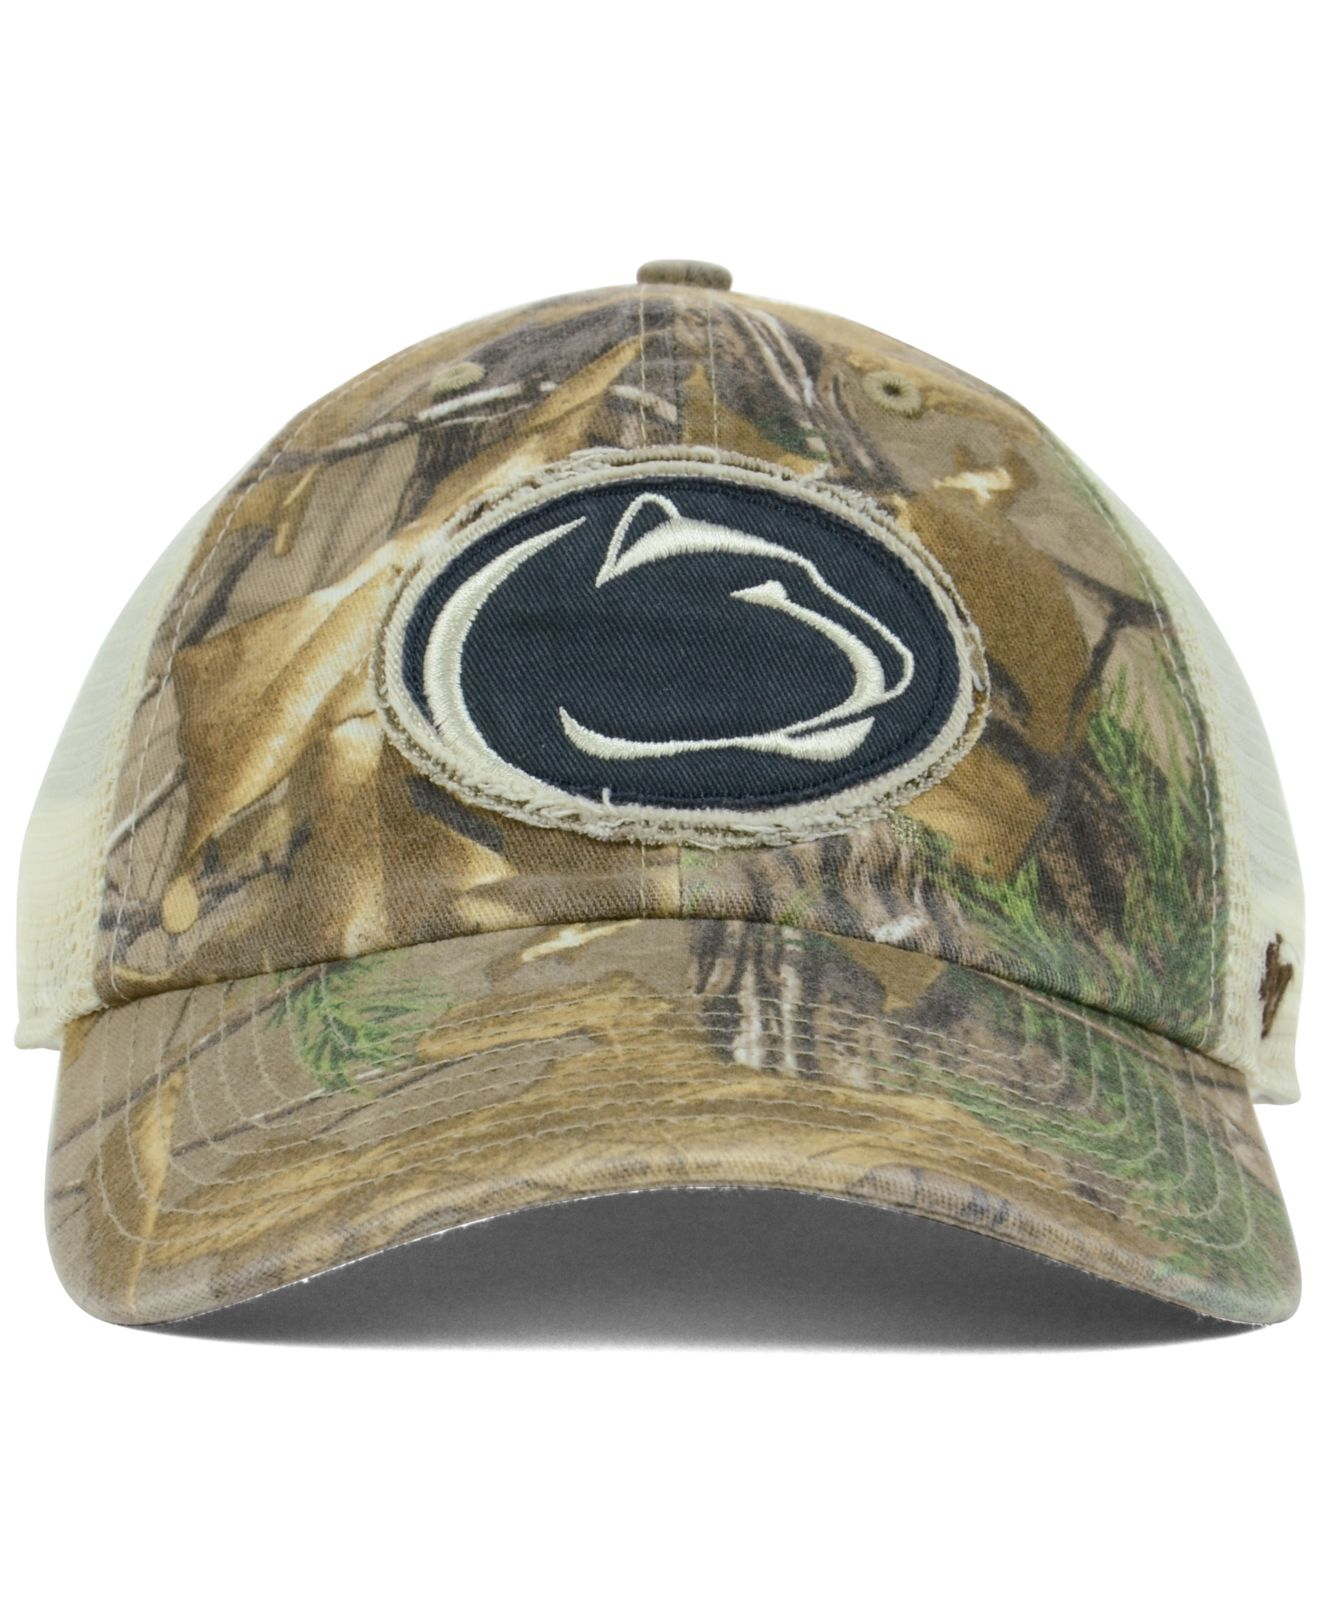 8bcfc6643c4bd Lyst - 47 Brand Penn State Nittany Lions Ncaa Closer Cap in Green ...